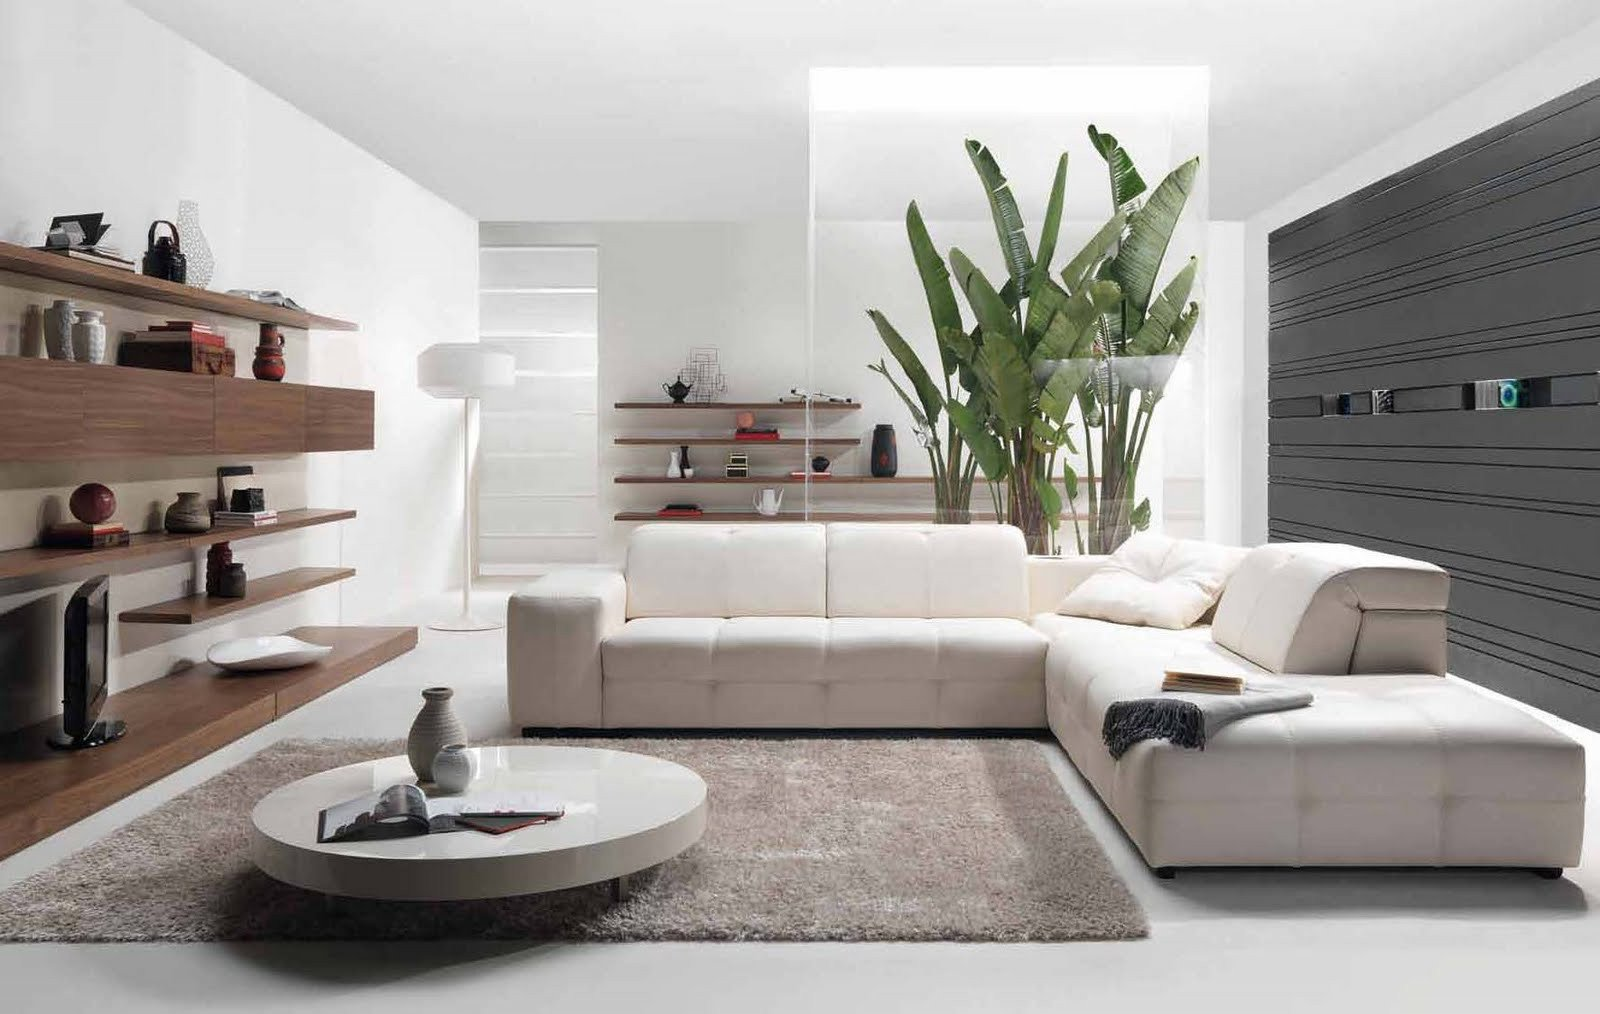 Living Room Decor Ideas Modern Awesome 25 Modern Living Room Decor Ideas – the Wow Style